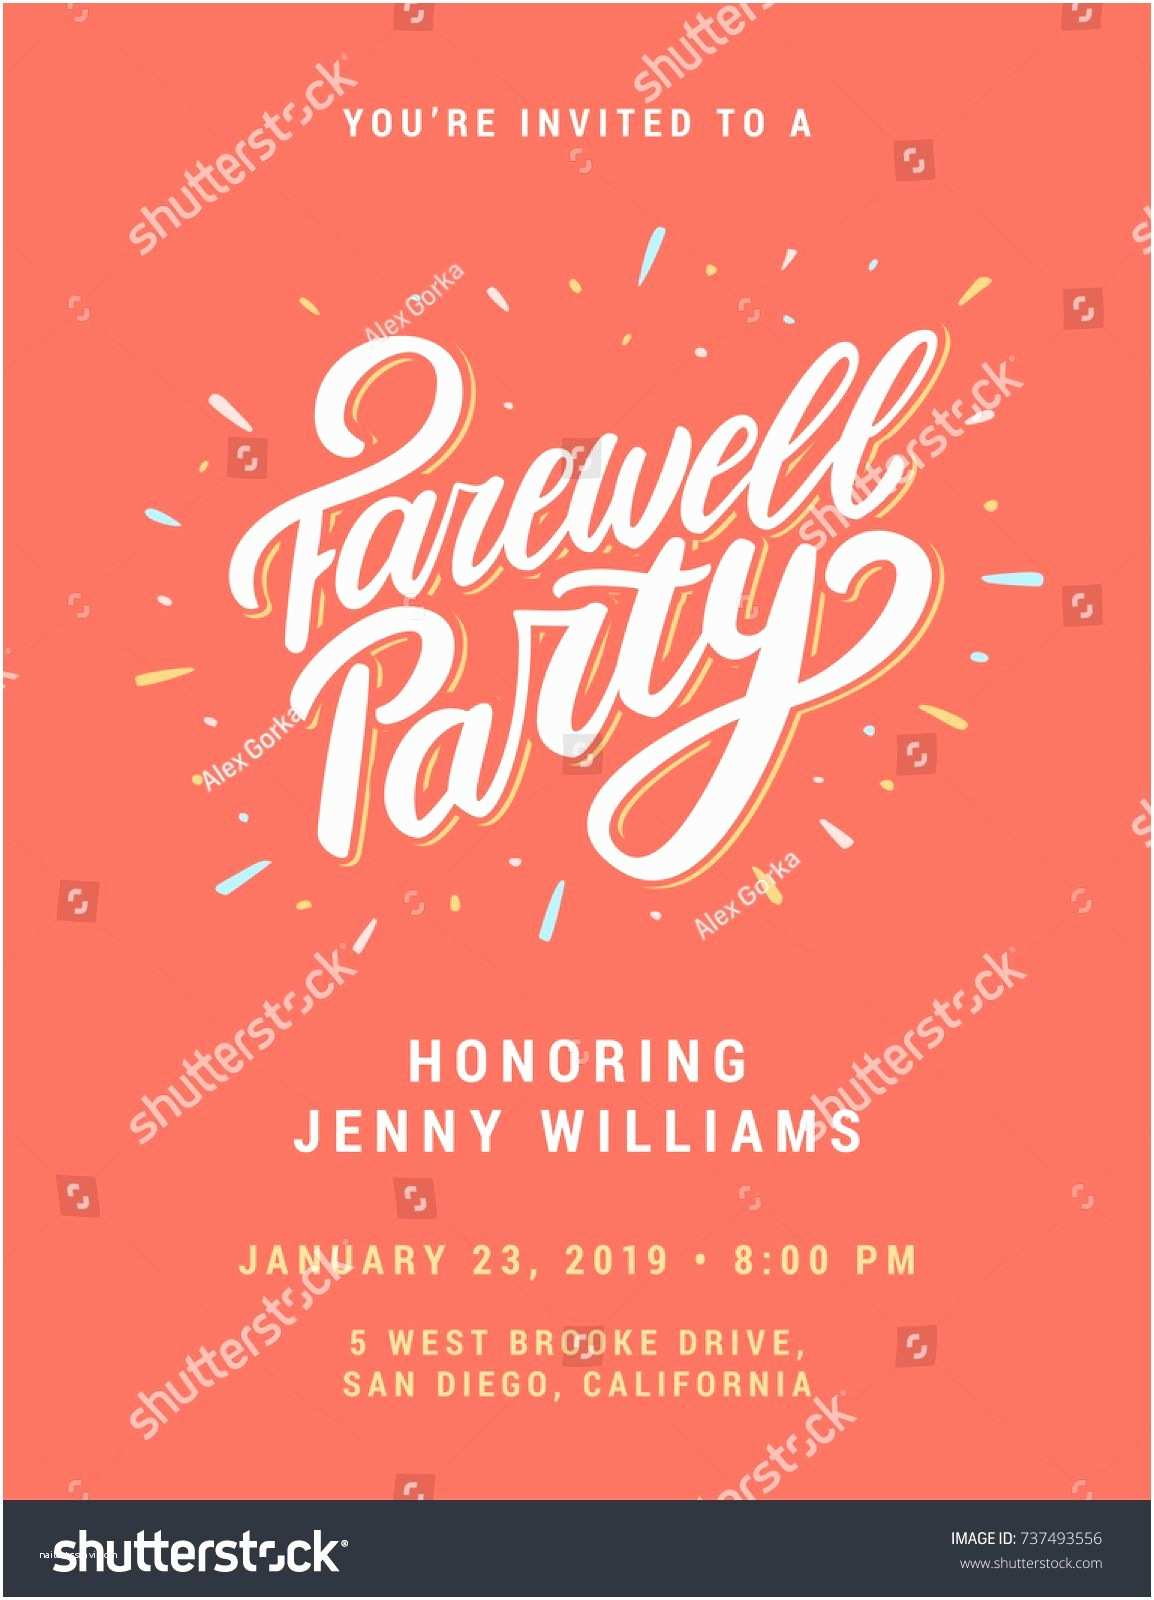 Farewell Party Invitation Farewell Party Invitation Template Free